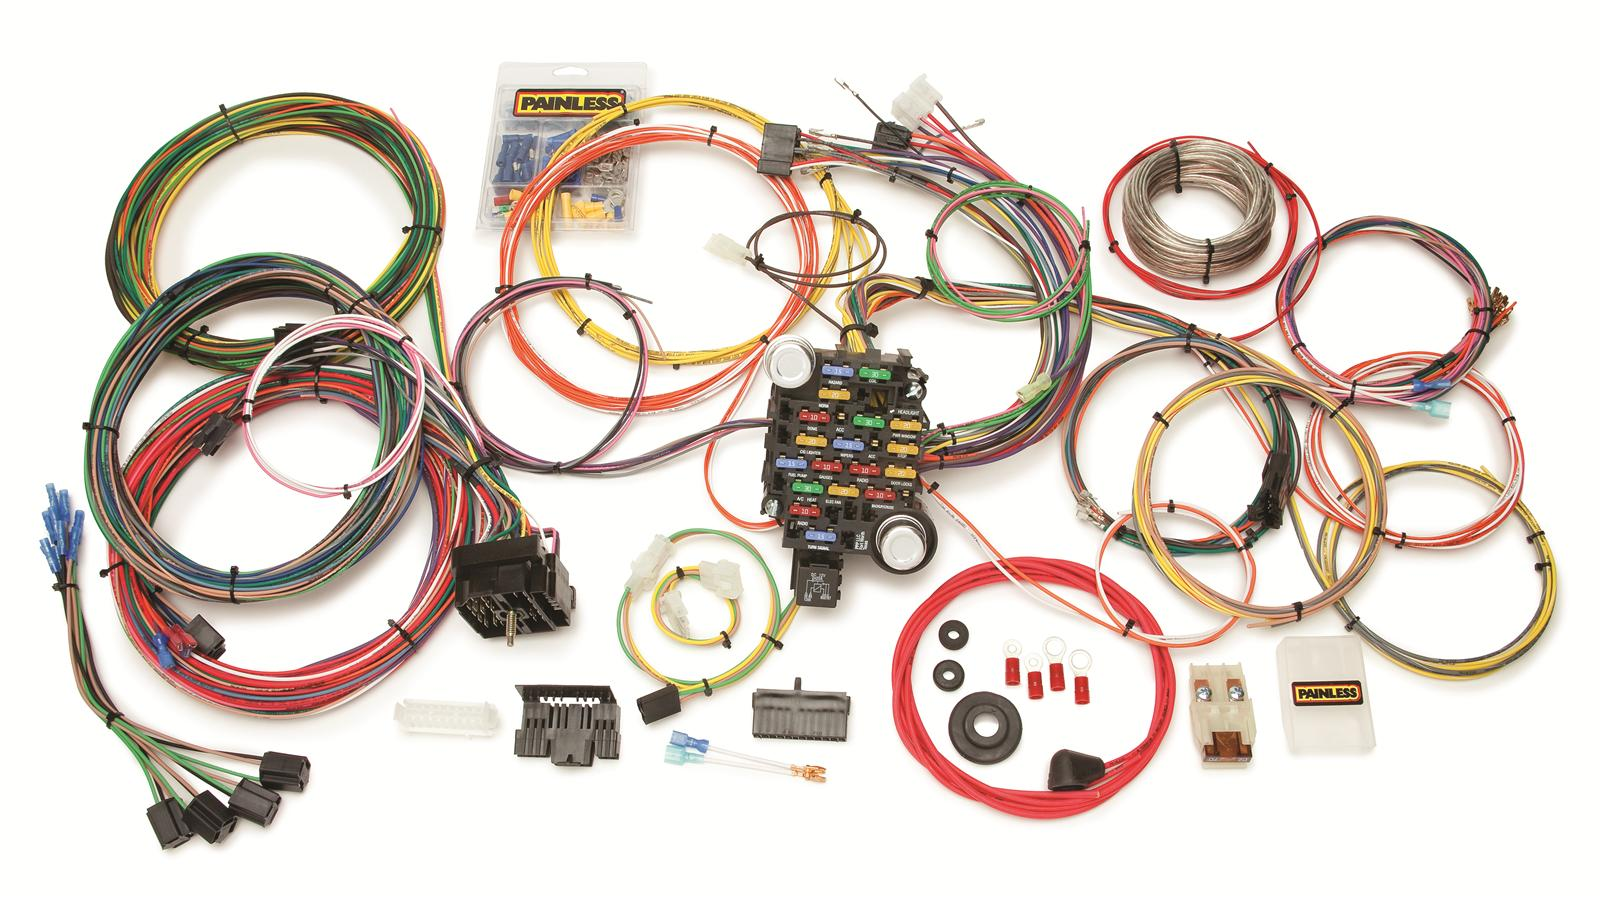 painless performance gmc chevy truck harnesses 10205 free shipping rh summitracing com 2004 chevrolet silverado wiring harness 2004 chevy silverado radio wiring harness diagram